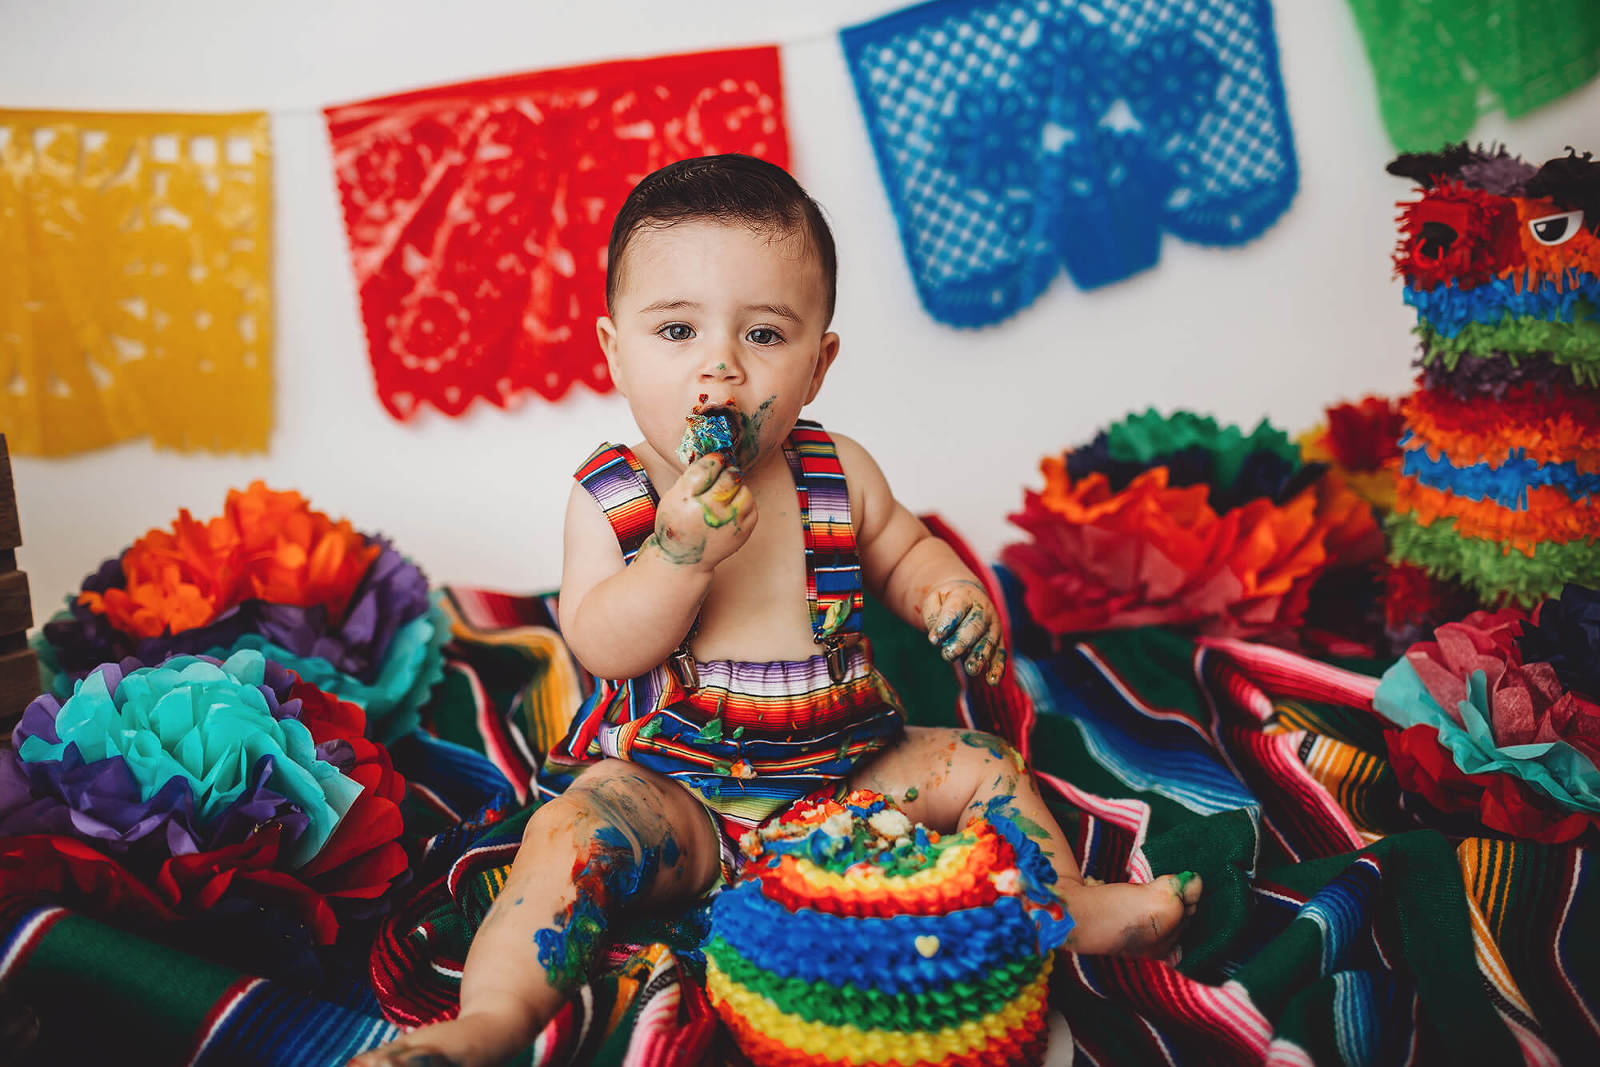 A Mexican-themed cake smash session from Belle Vie Photography in Tucson